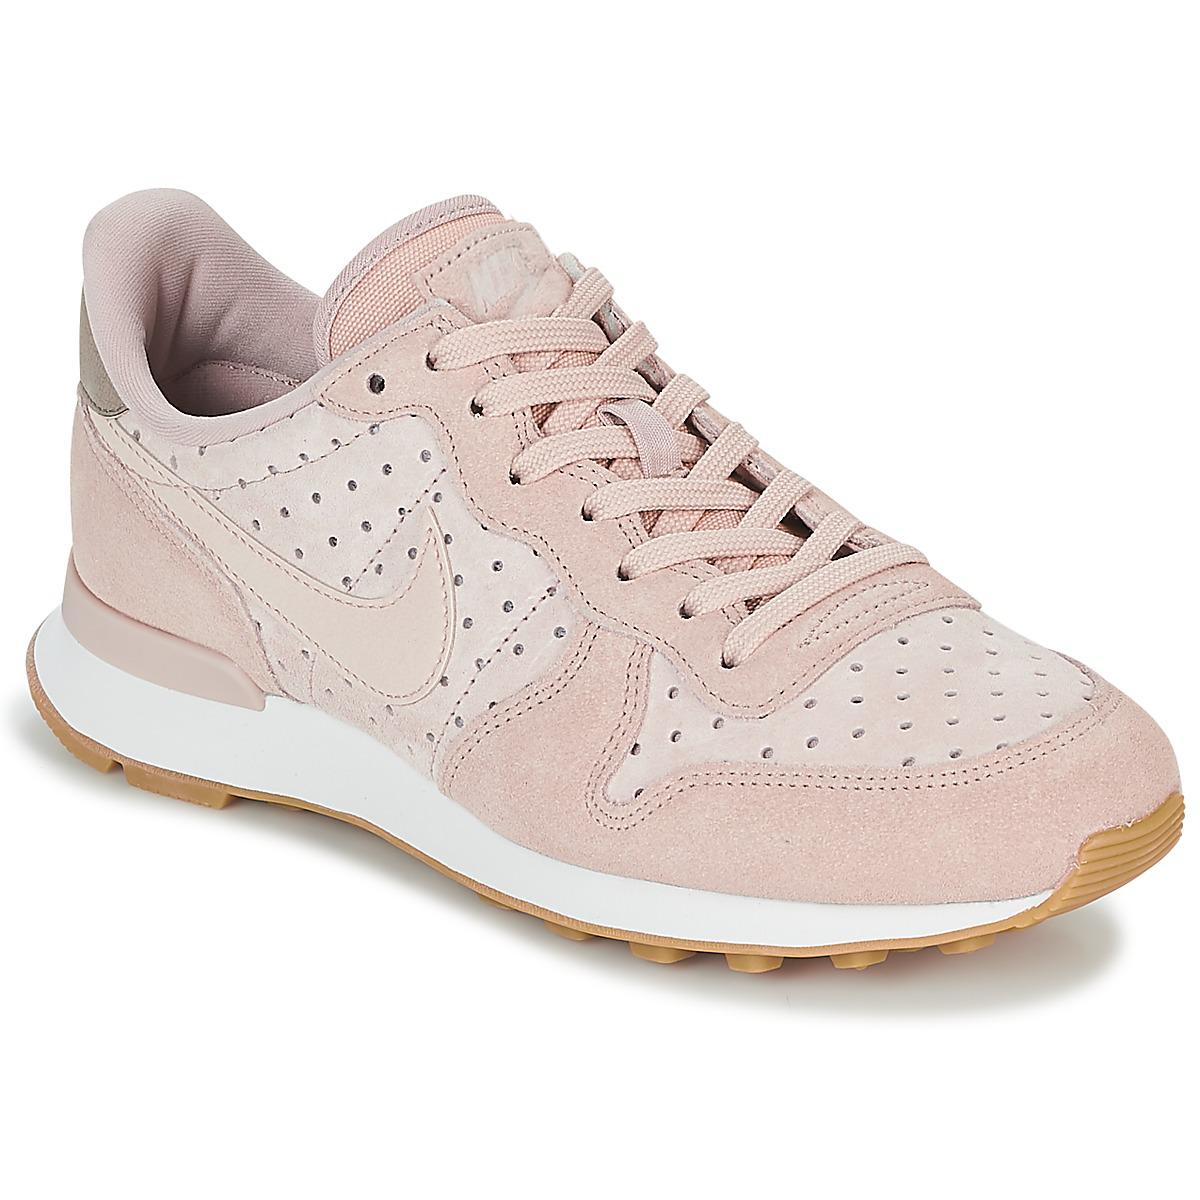 Nike Internationalist Premium W Women s Shoes (trainers) In Pink in ... c3388bd3c0ab